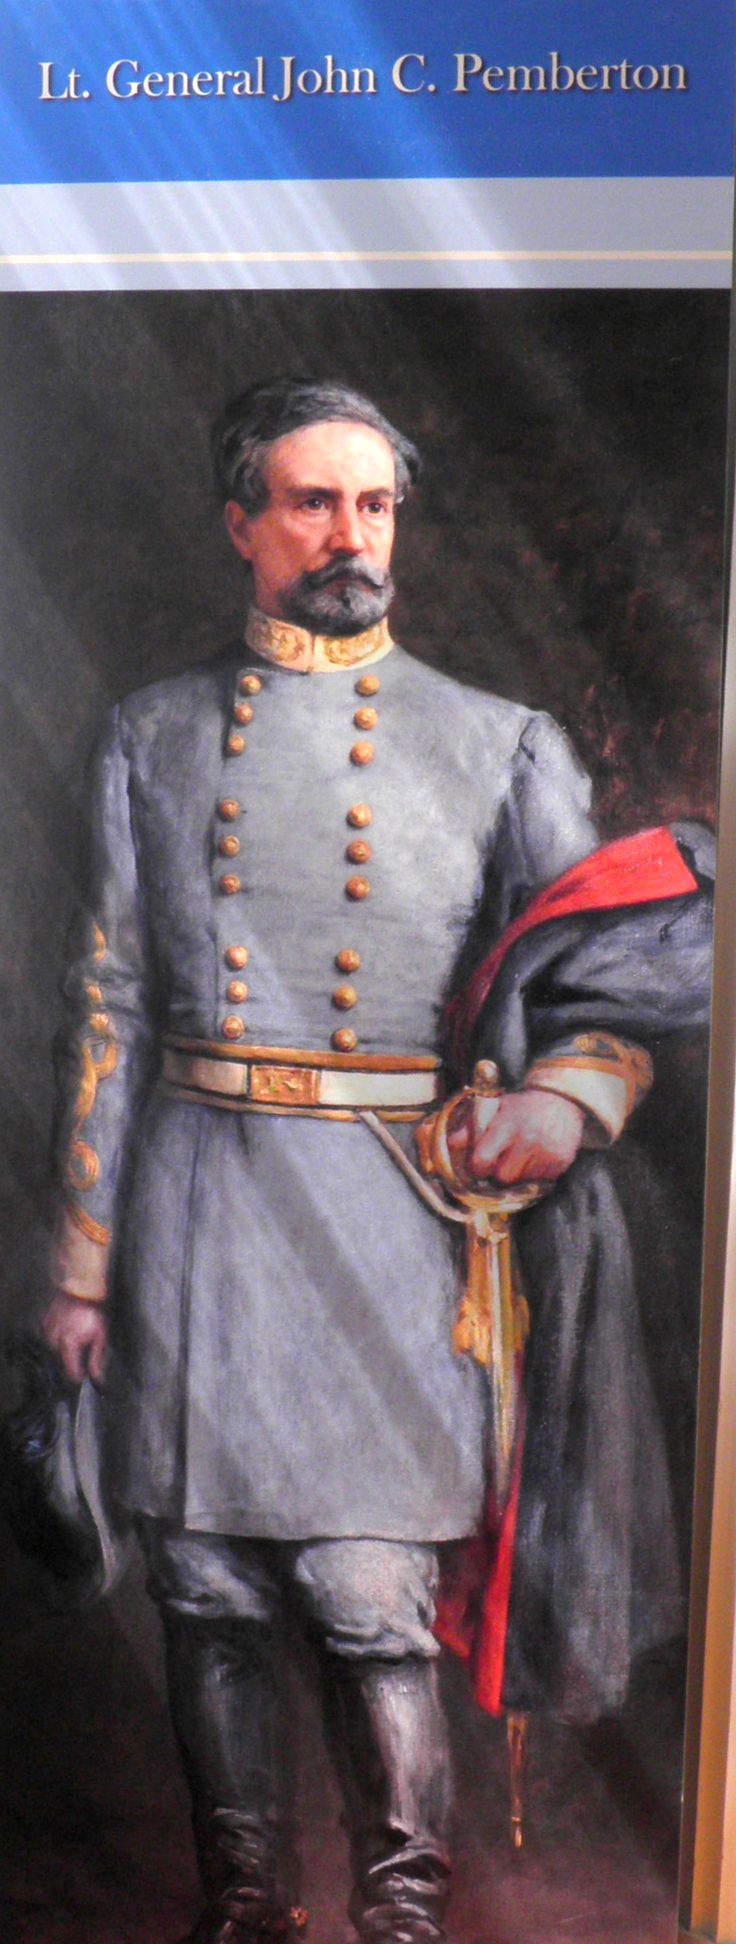 Portrait of Lt. General John C. Pemberton, Confederate commander during the siege of Vicksburg, MS, on display in the General's headquarters